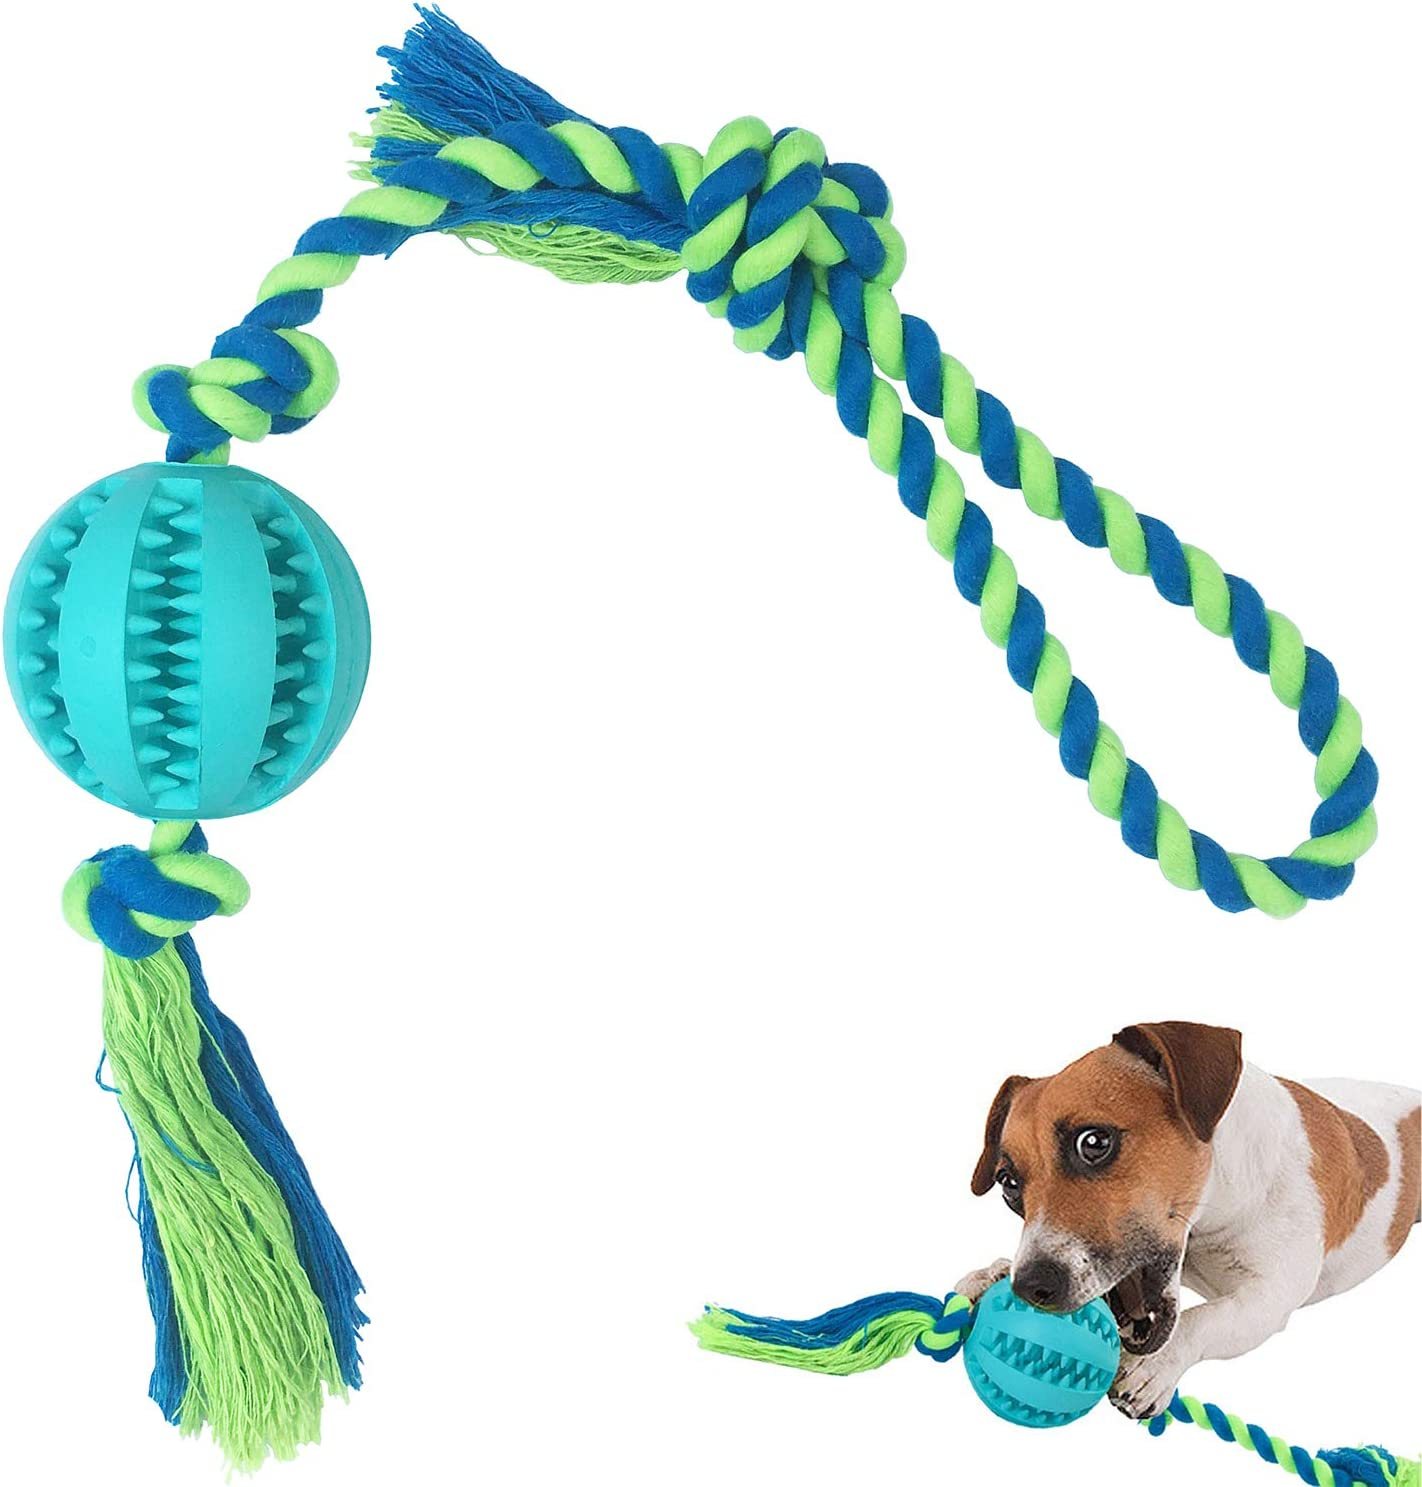 Interactive Dog Toys,Large/Medium Dog Tug Toy, IQ Treat Boredom Food Dispensing, Puzzle Puppy Pals Tough Durable Rubber Pet Ball, Best Cleans Teeth Dog Balls